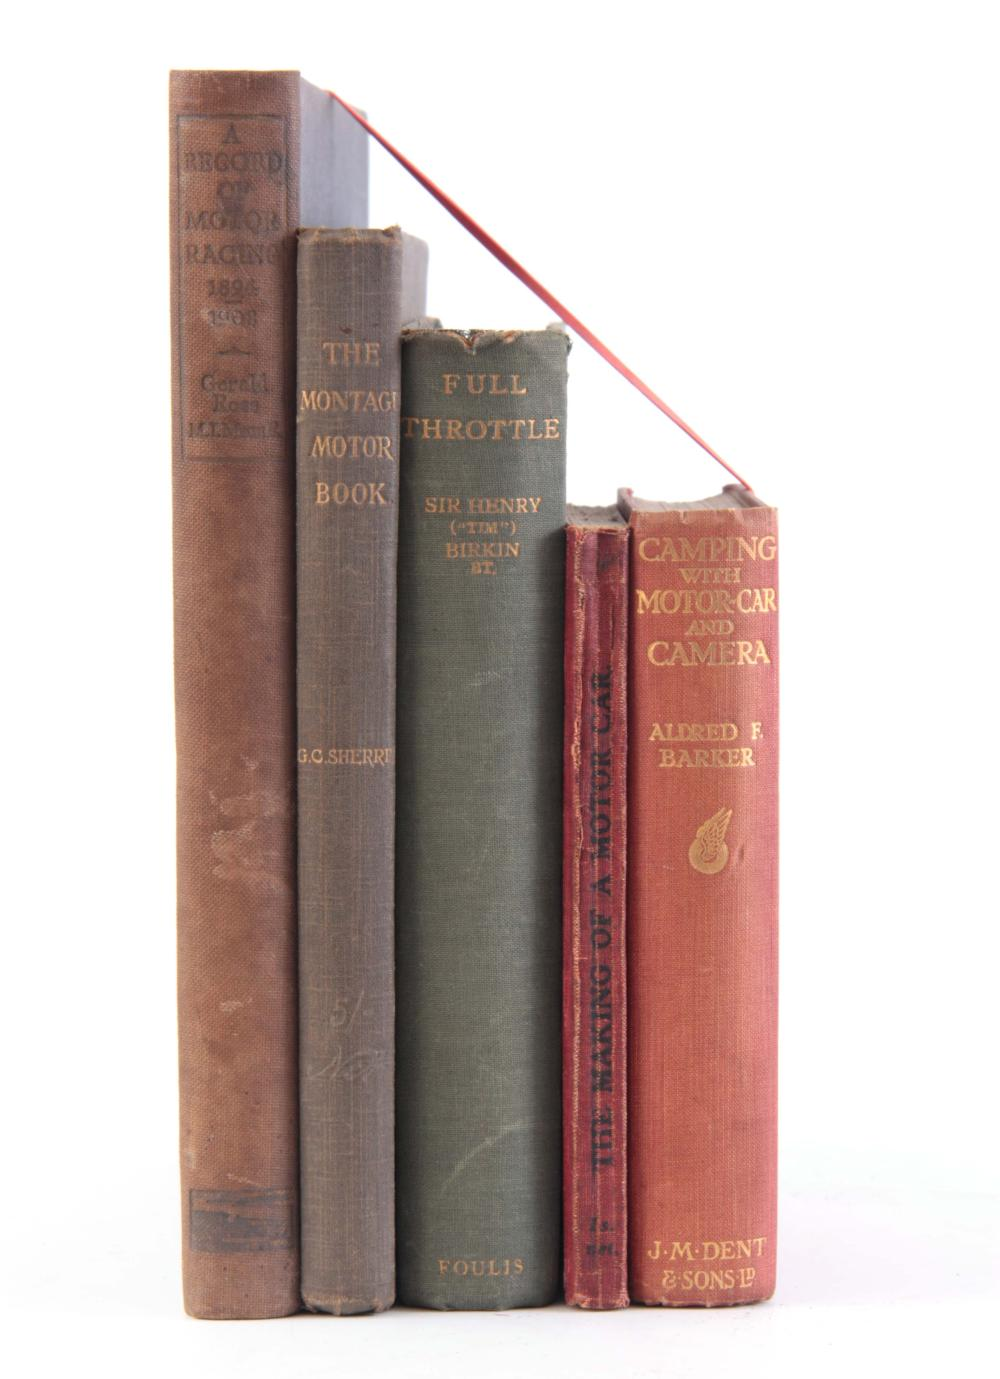 A COLLECTION OF 5 BOOKS including CAMPING WITH MOT